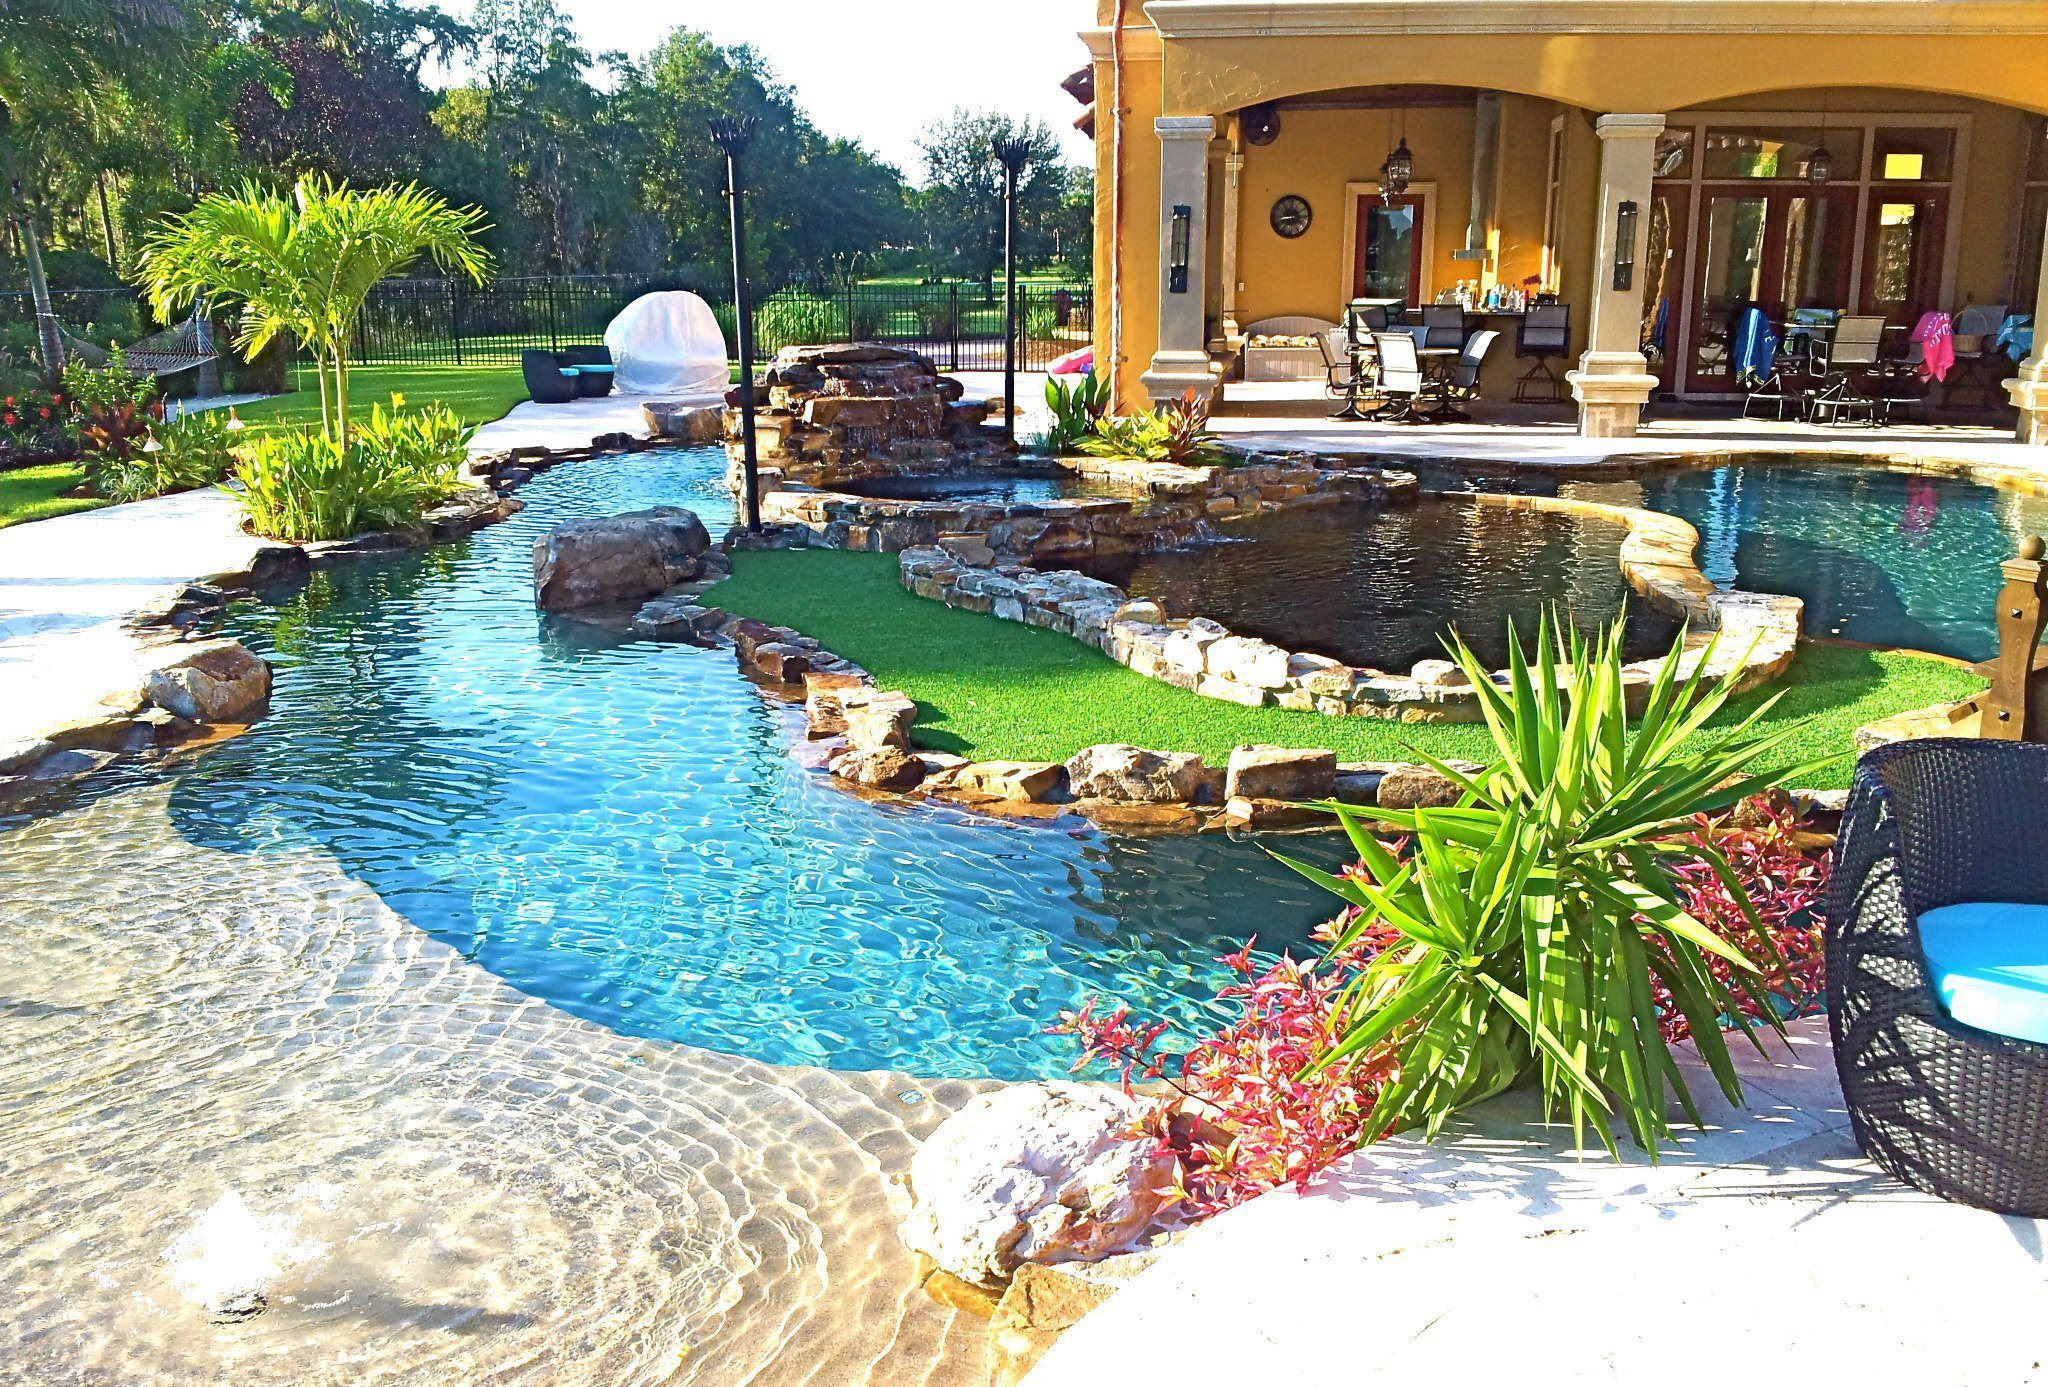 Backyard oasis lazy river pool with island lagoon and jacuzzi in the middle bunnycouture i - How to create a small outdoor oasis ...